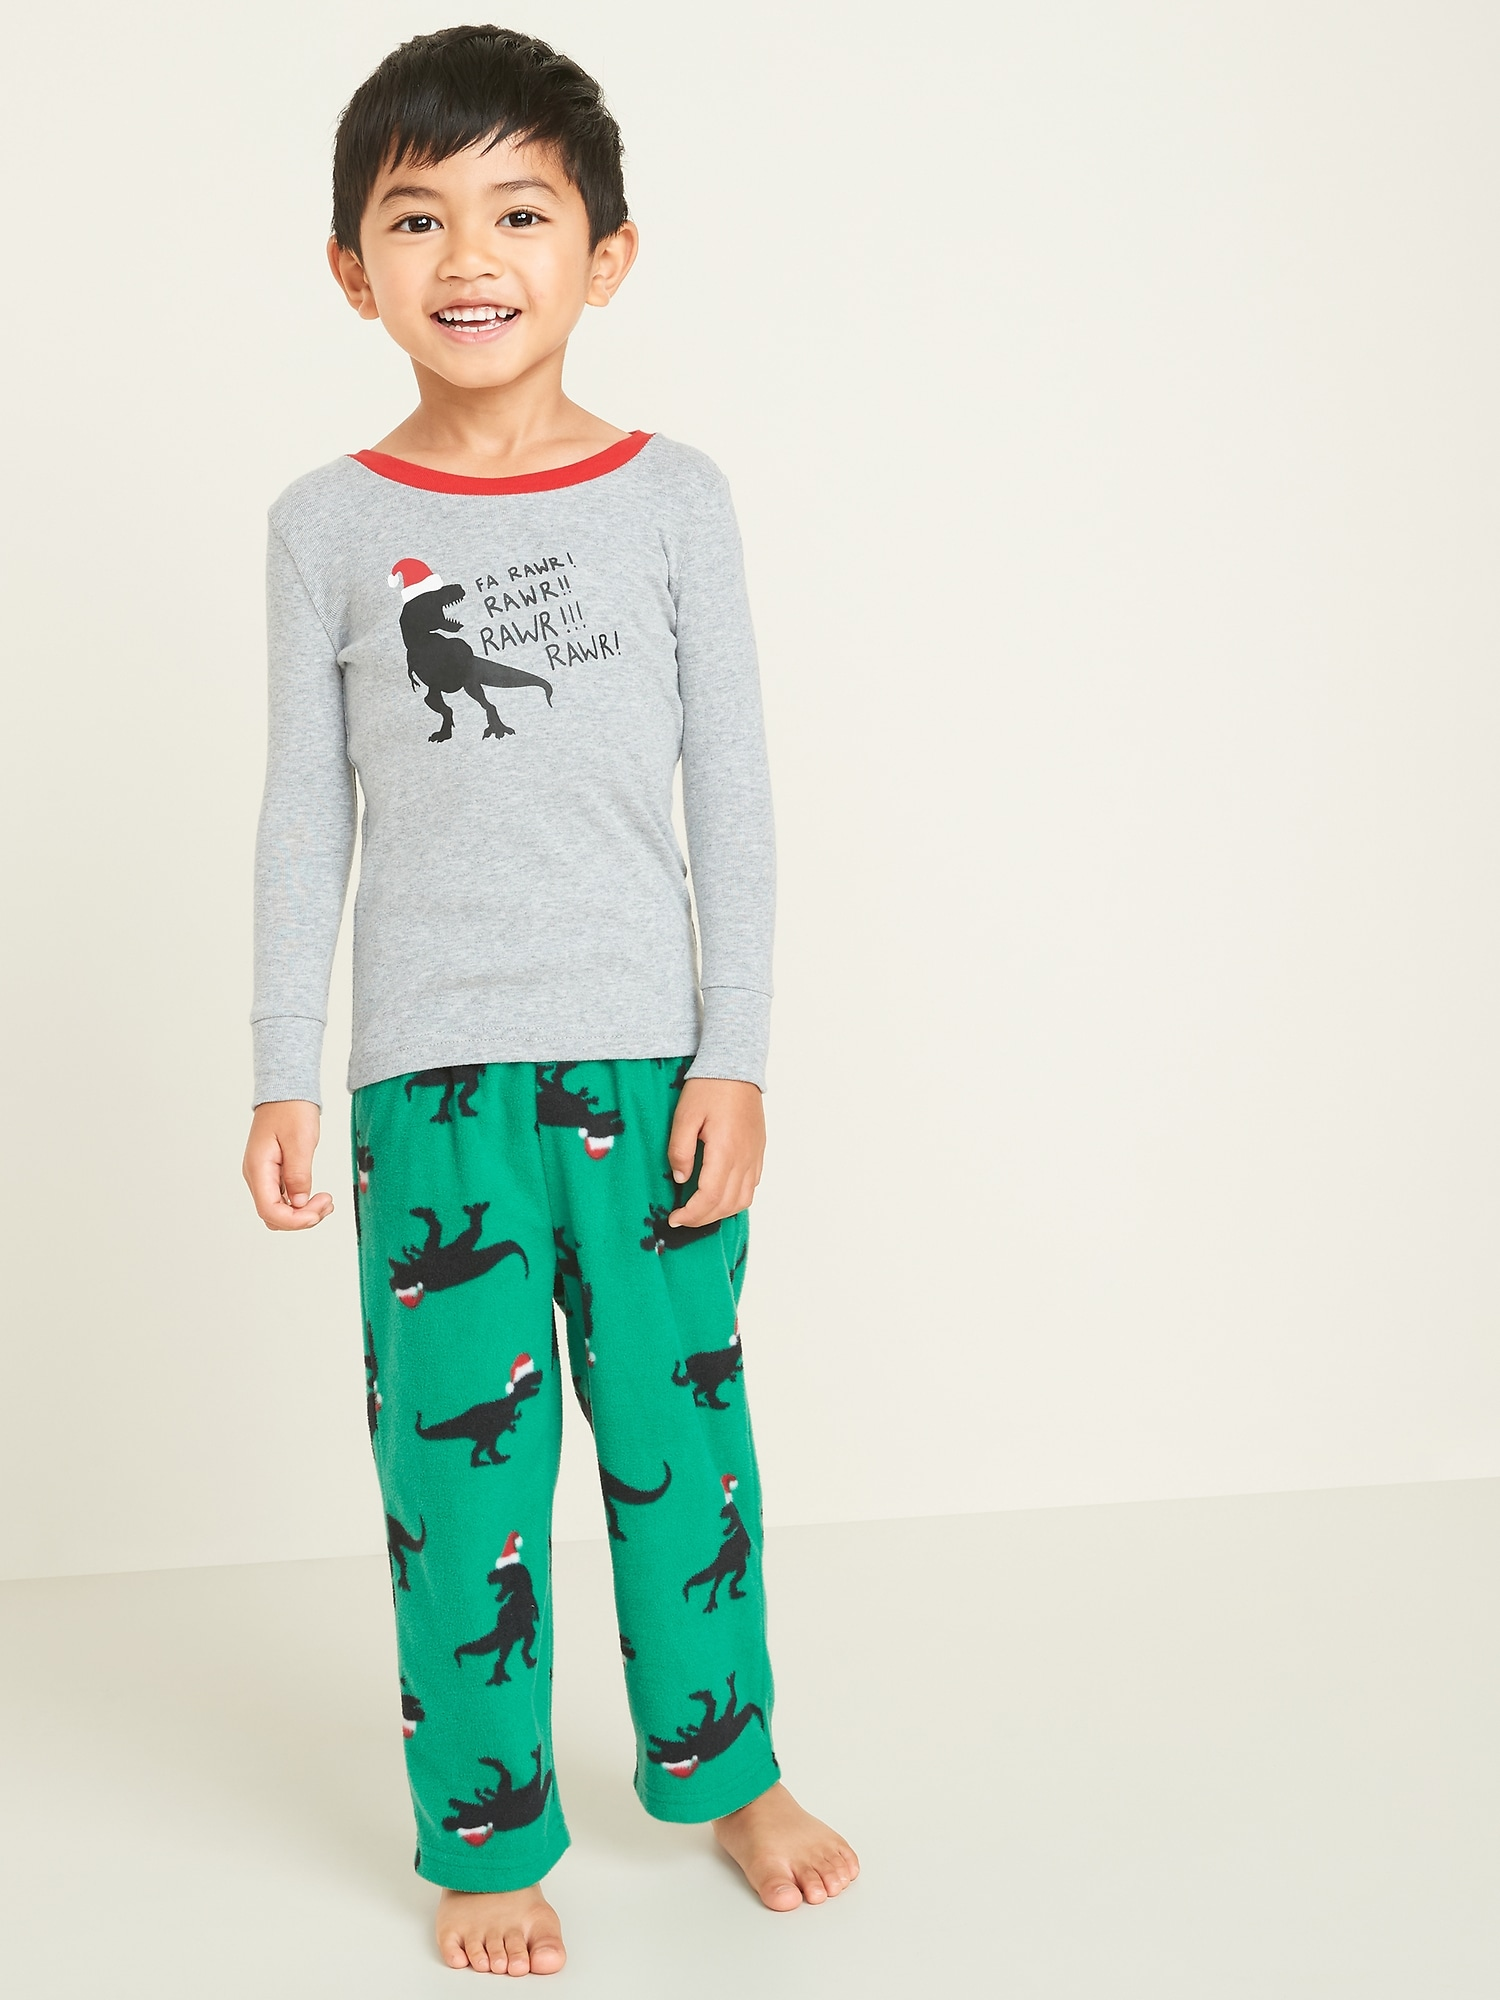 Christmas TRex Pajamas for Boys